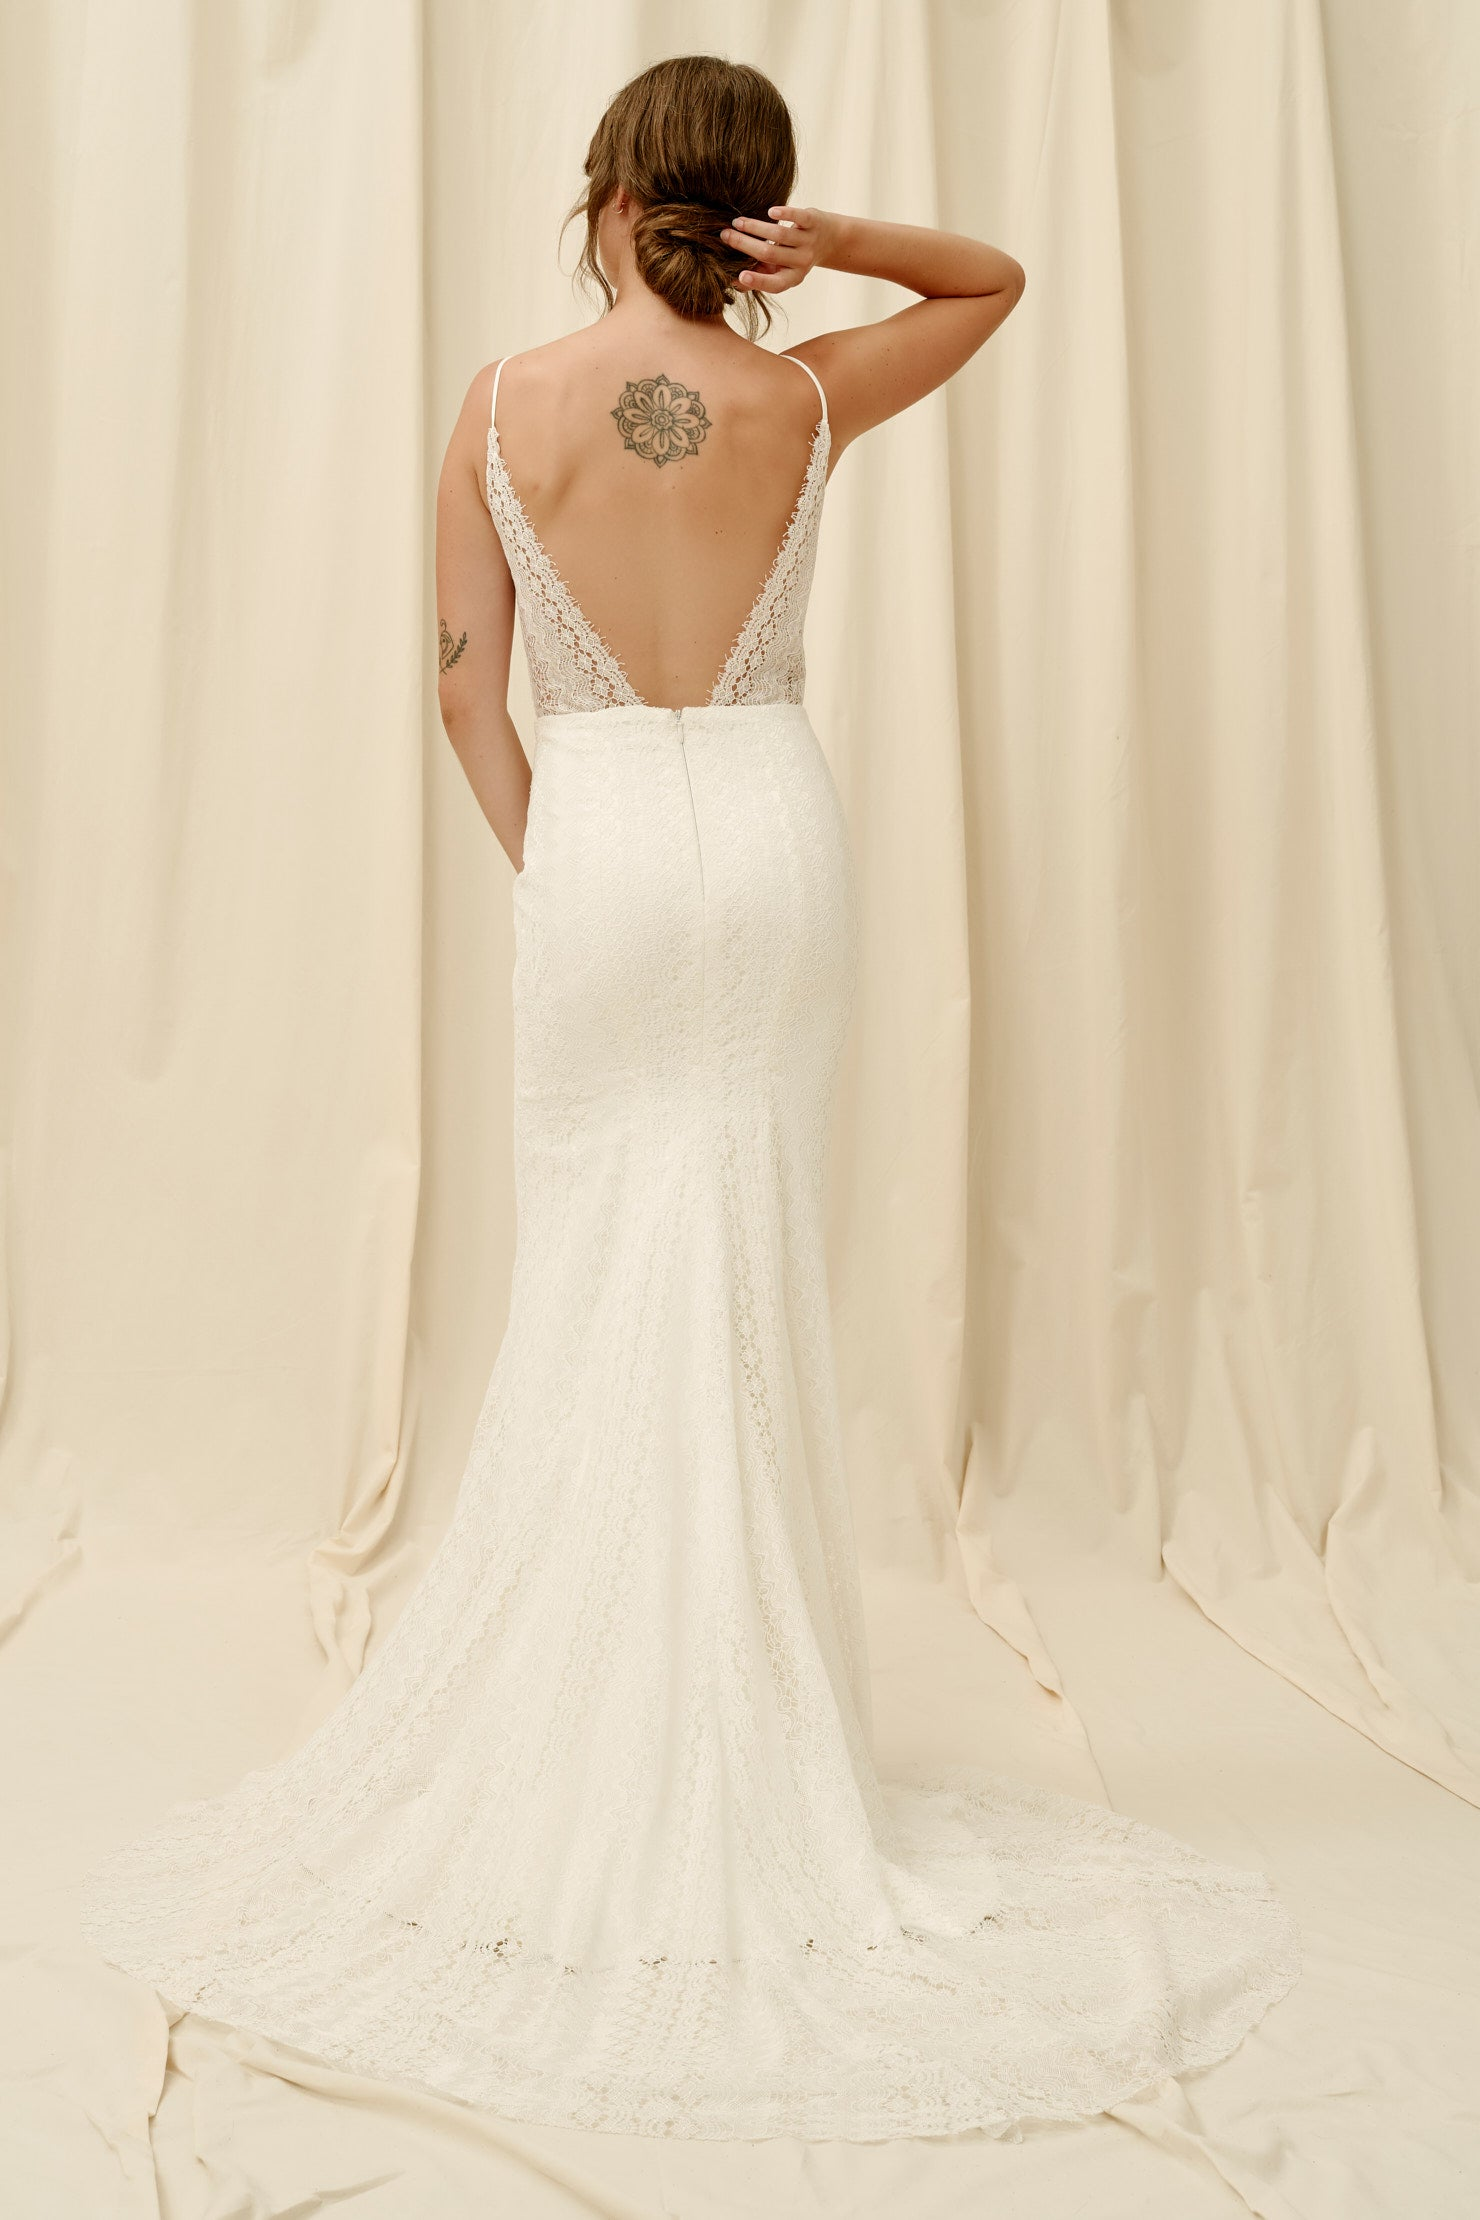 Fitted lace wedding dress with spaghetti straps and a long train